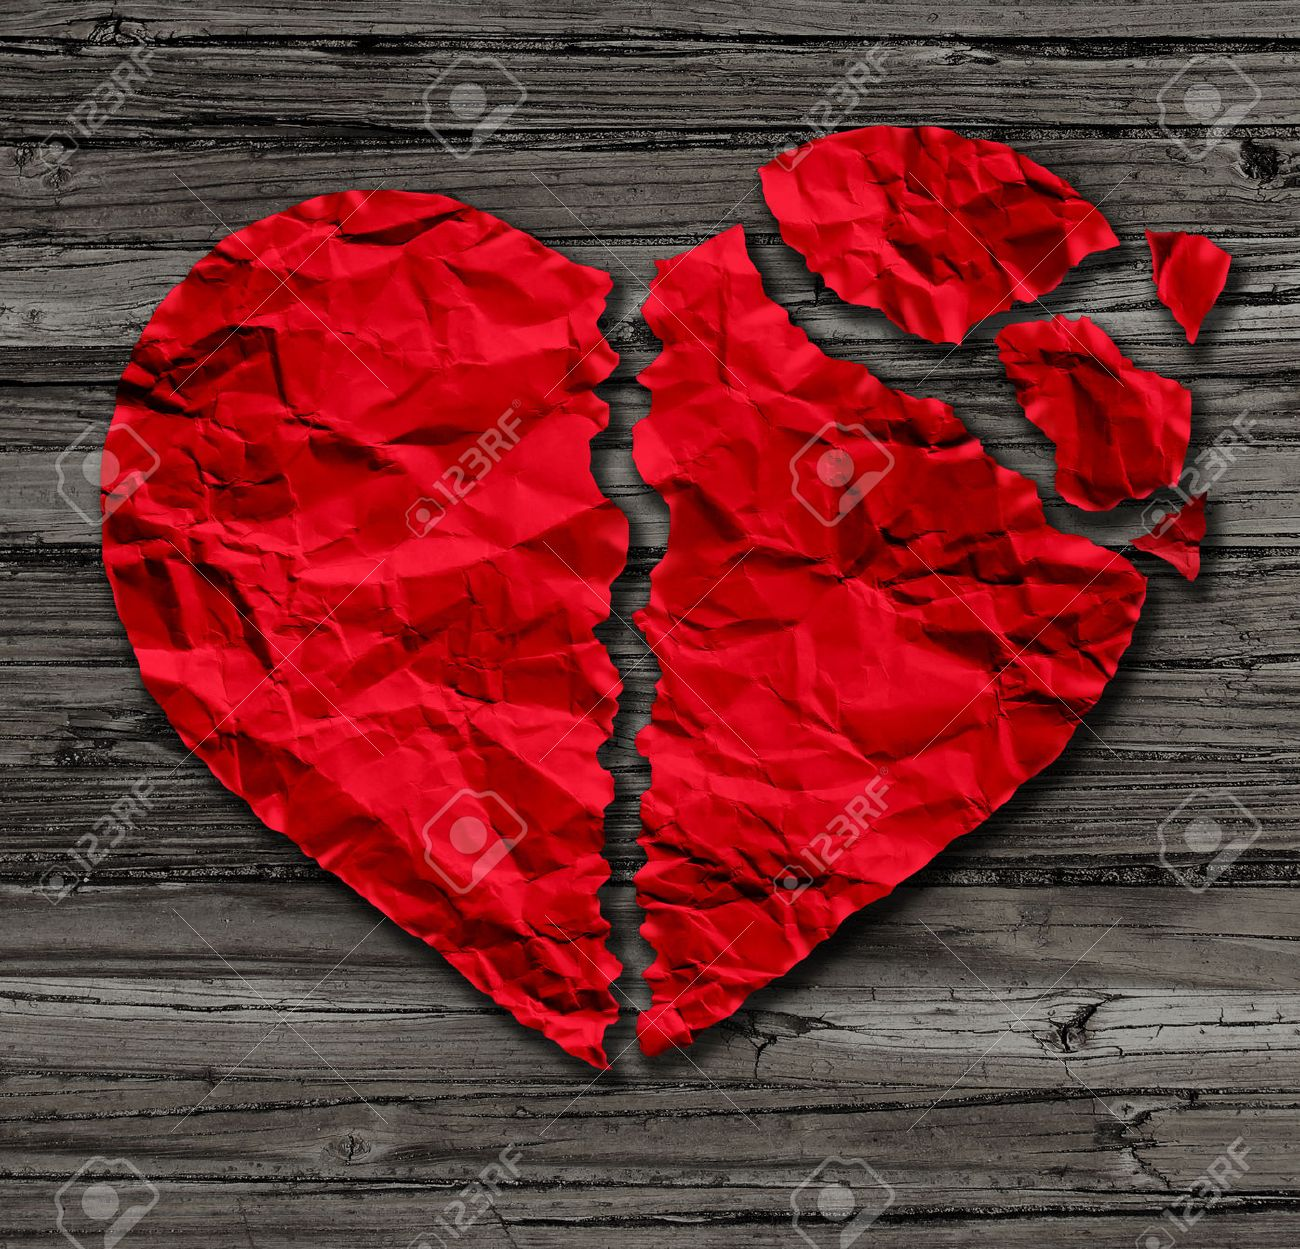 Broken Heart Breakup Concept As A Separation And Divorce Icon As Red